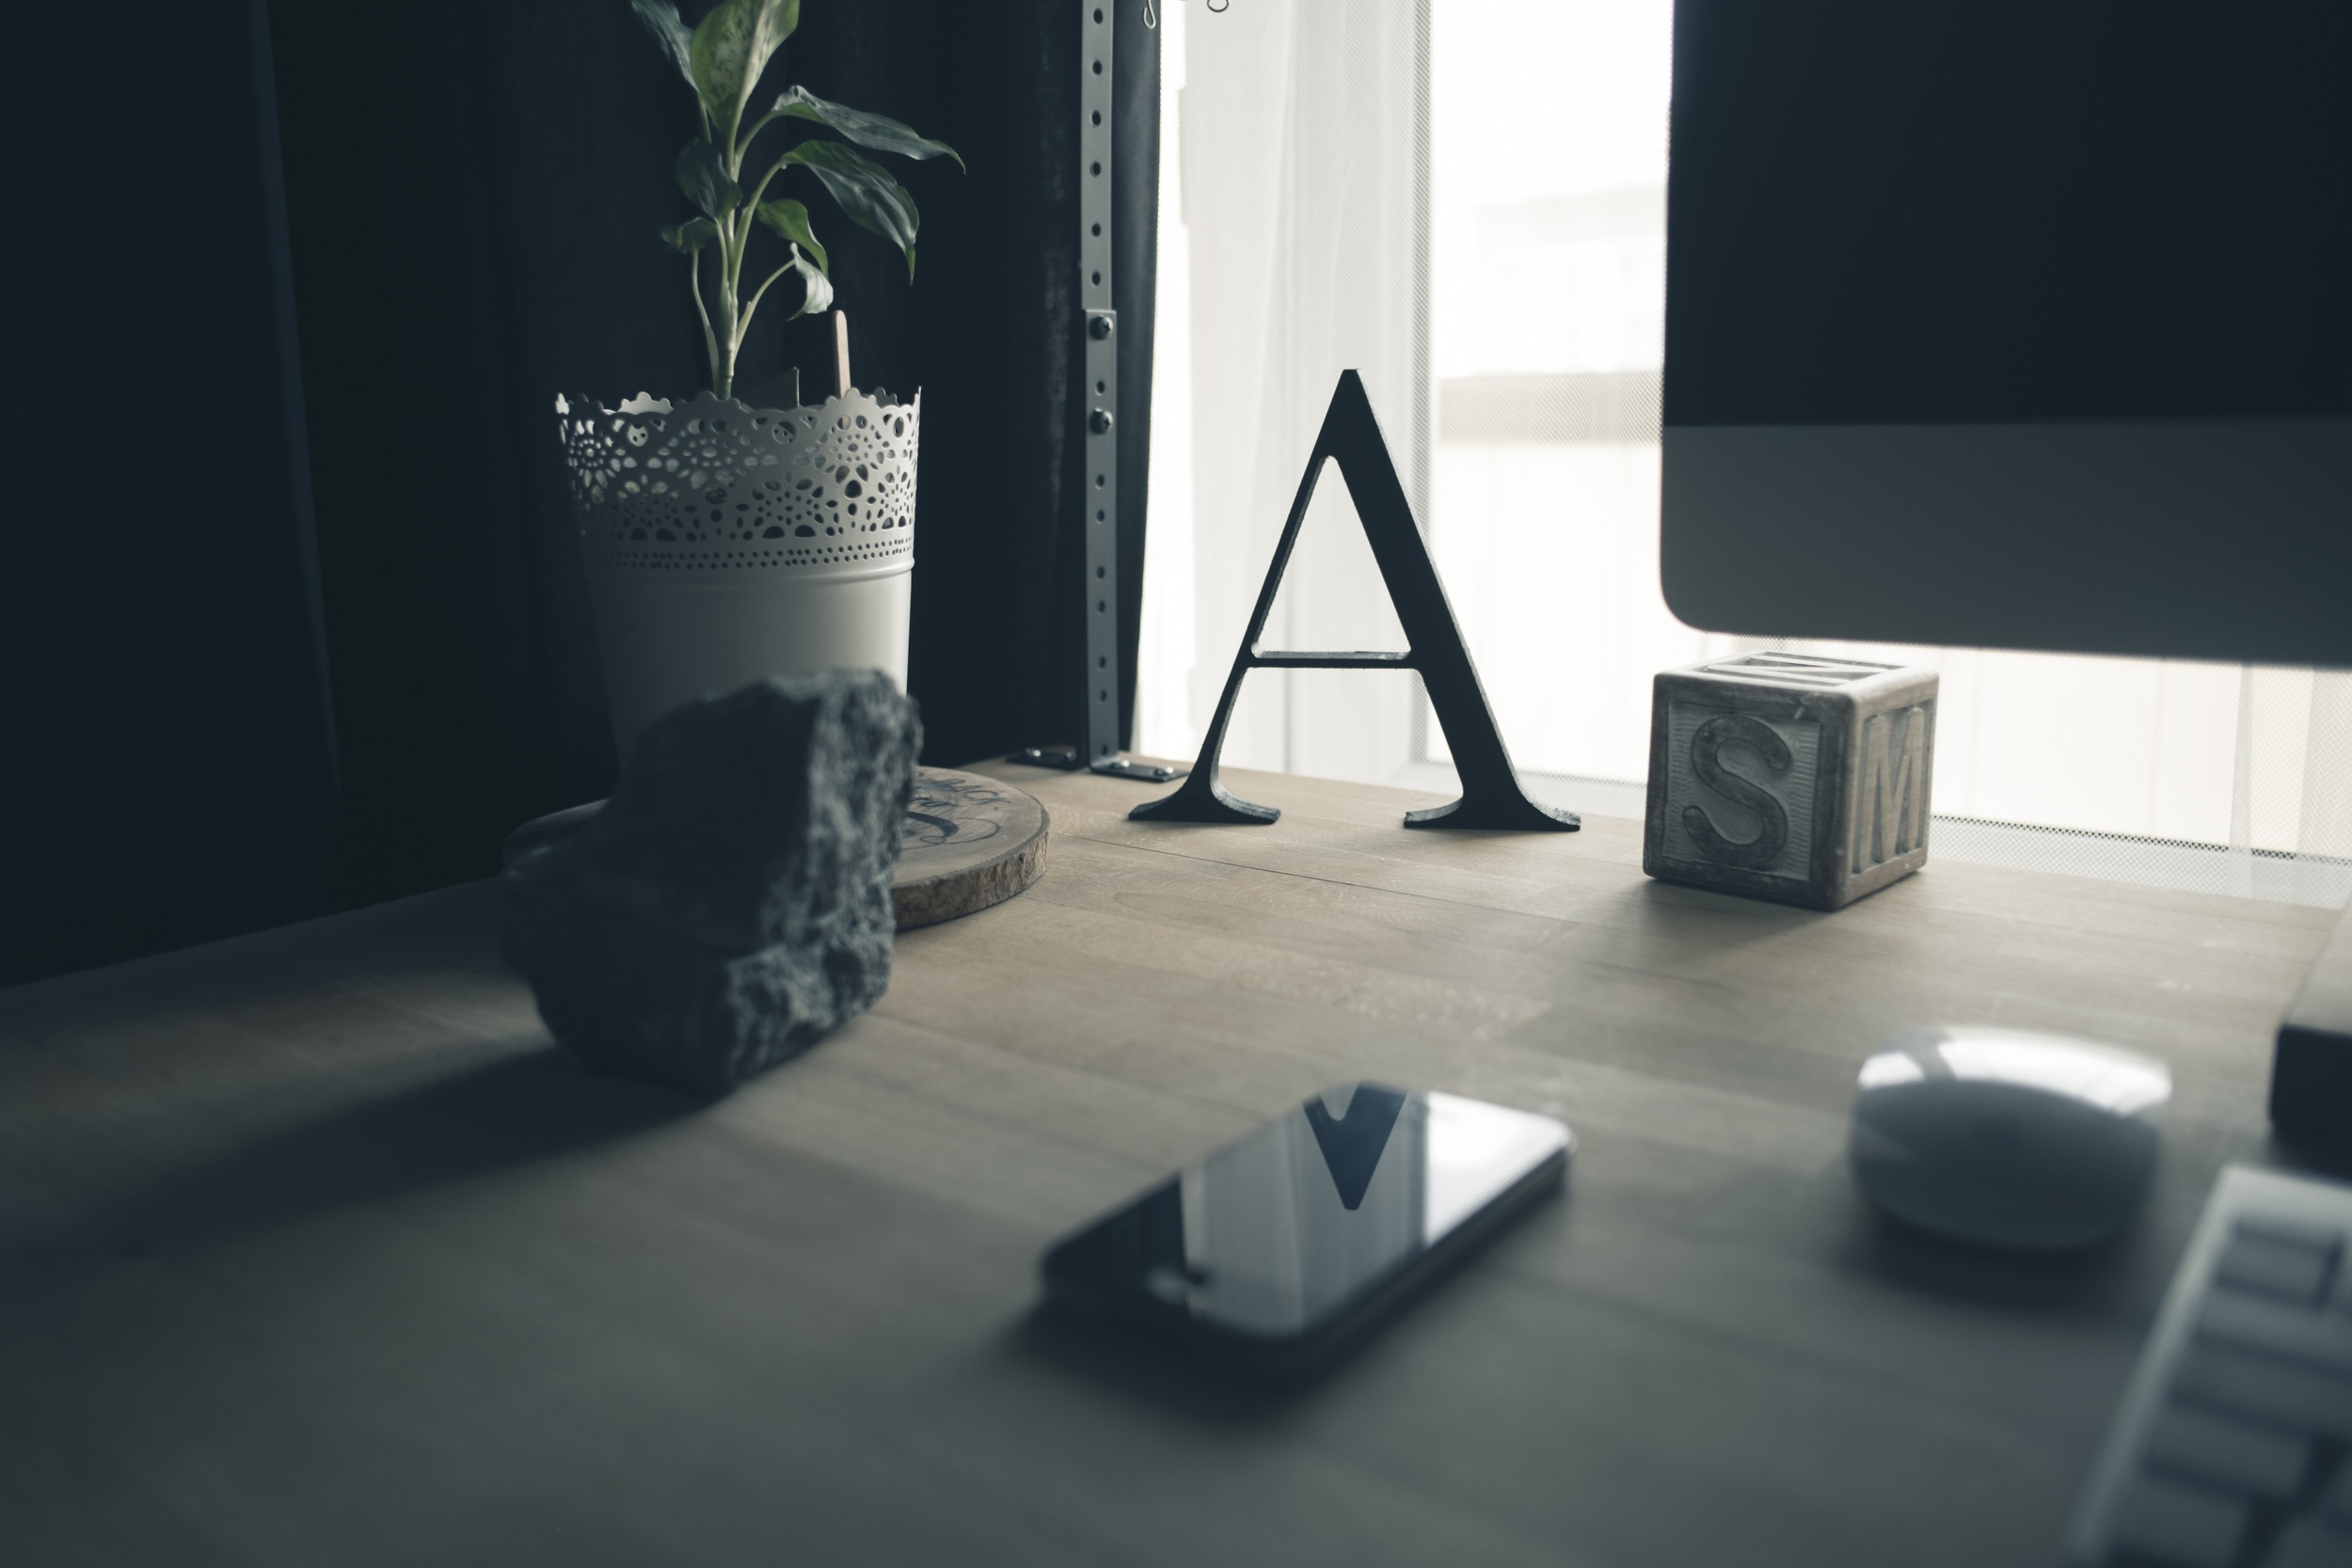 Letter A on work desk